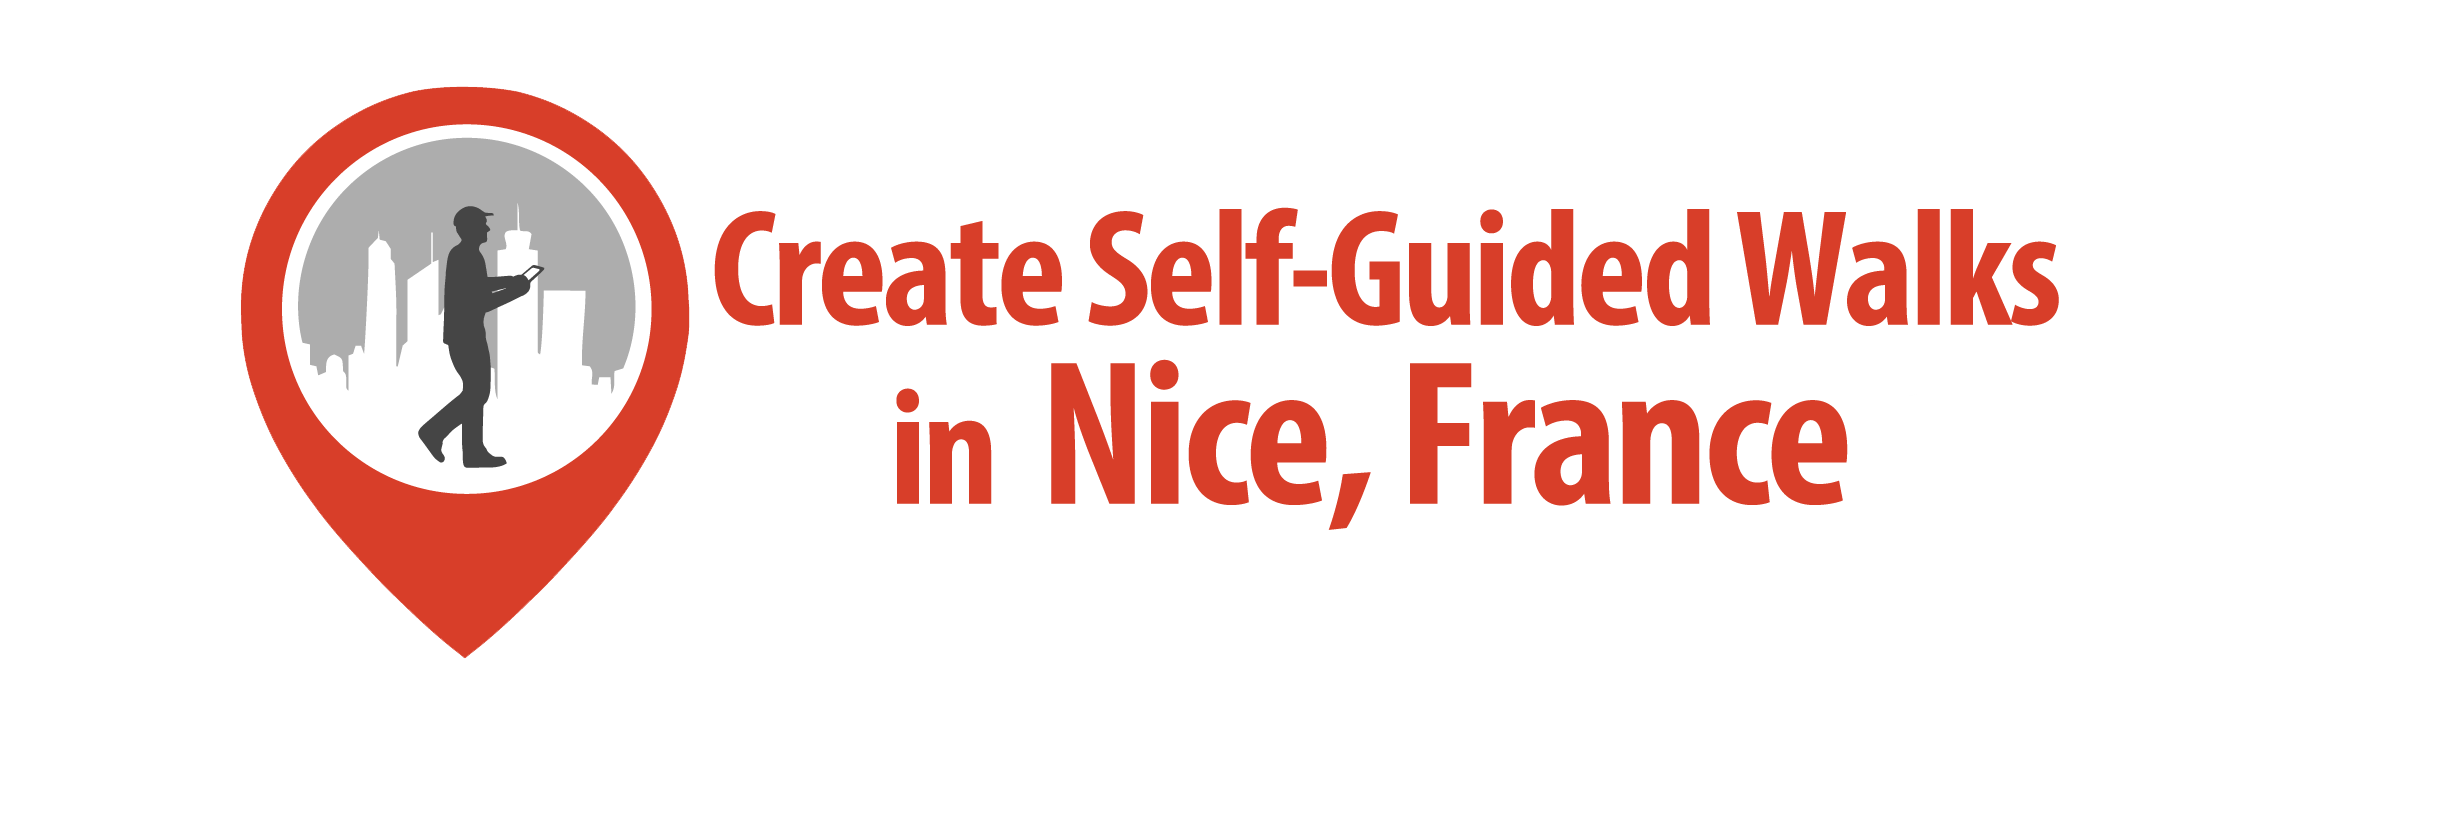 self-guided-nice-logo.png